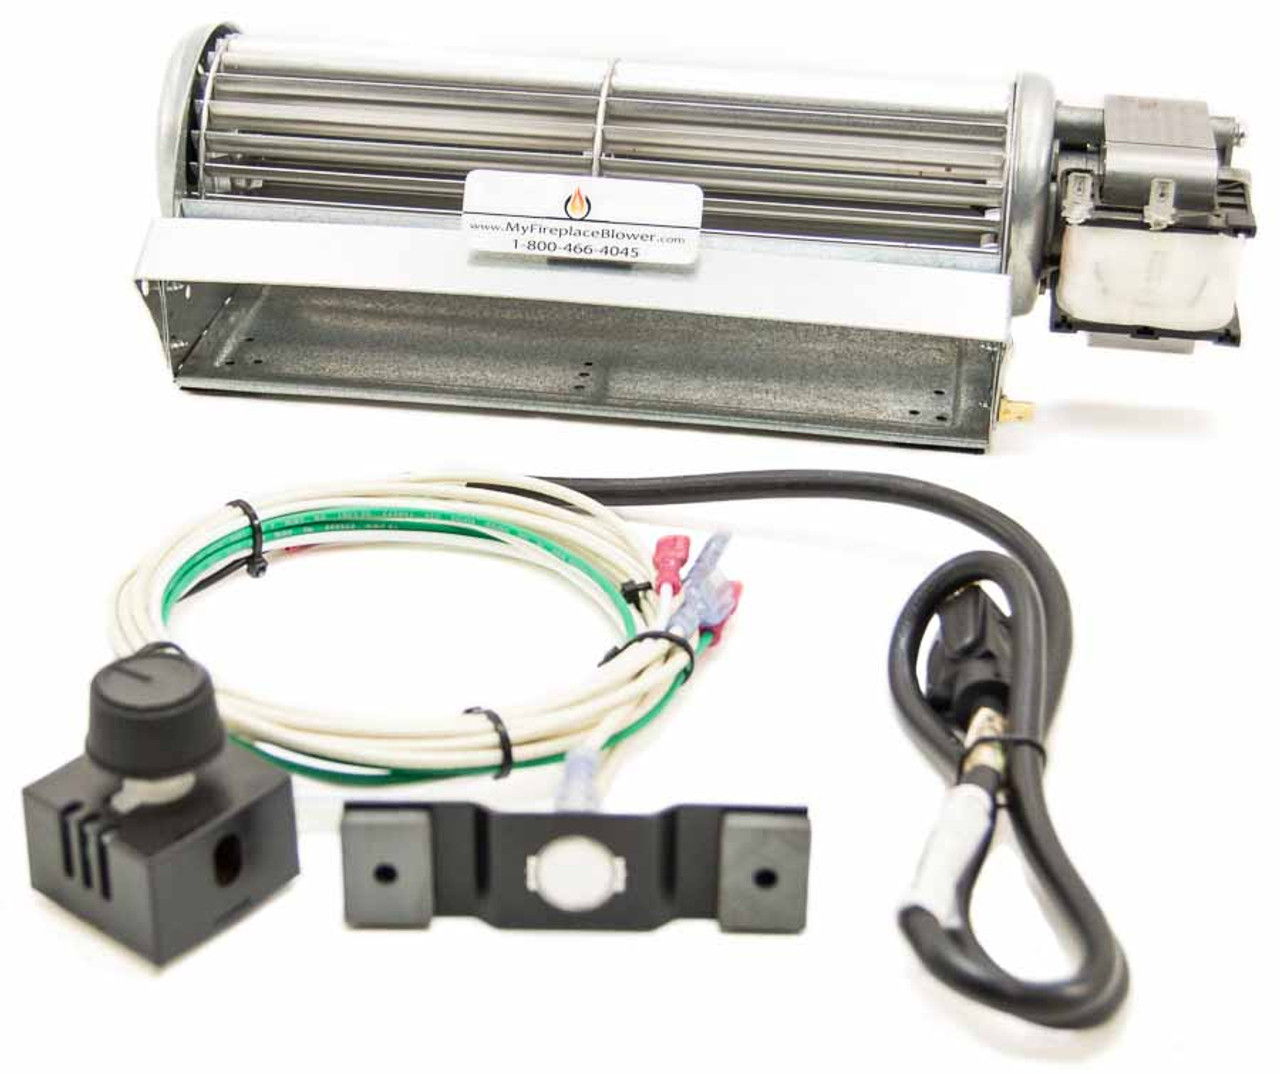 hight resolution of blot240 fireplace blower fan kit for monessen fireplaces